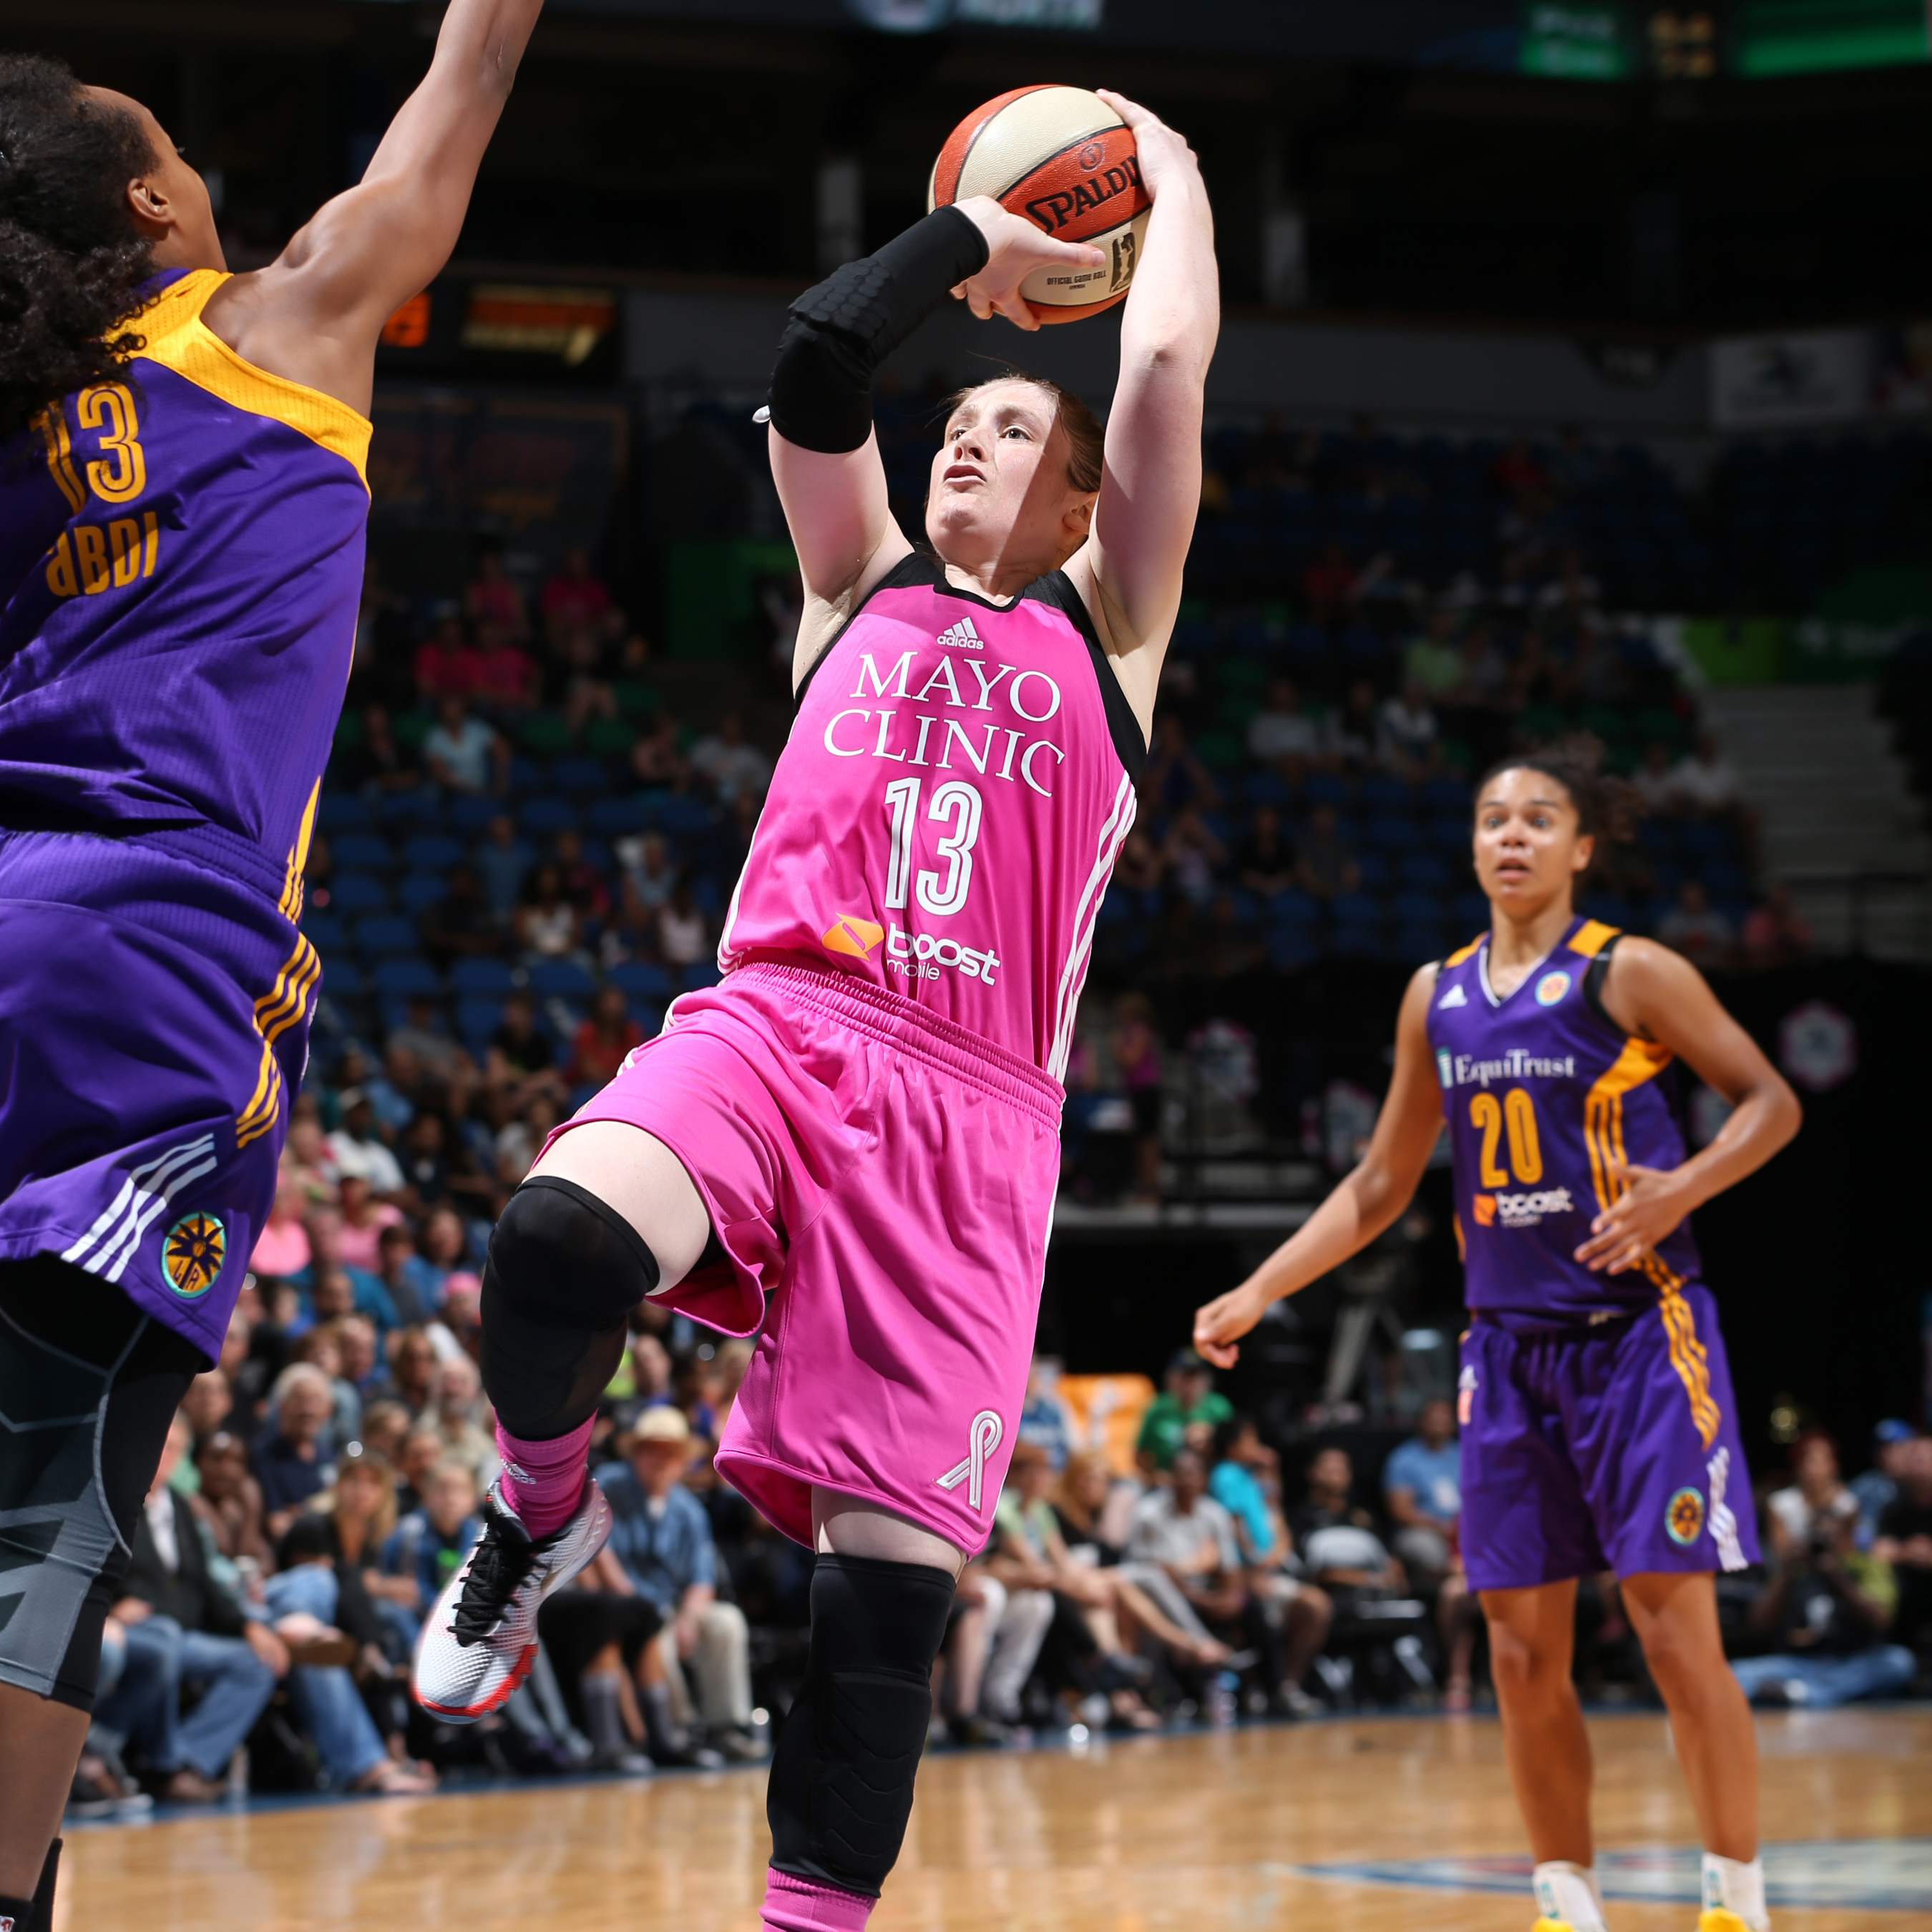 Lynx guard Lindsay Whalen quietly dropped 10 points on the Sparks, helping guide Minnesota to a 72-64 victory.